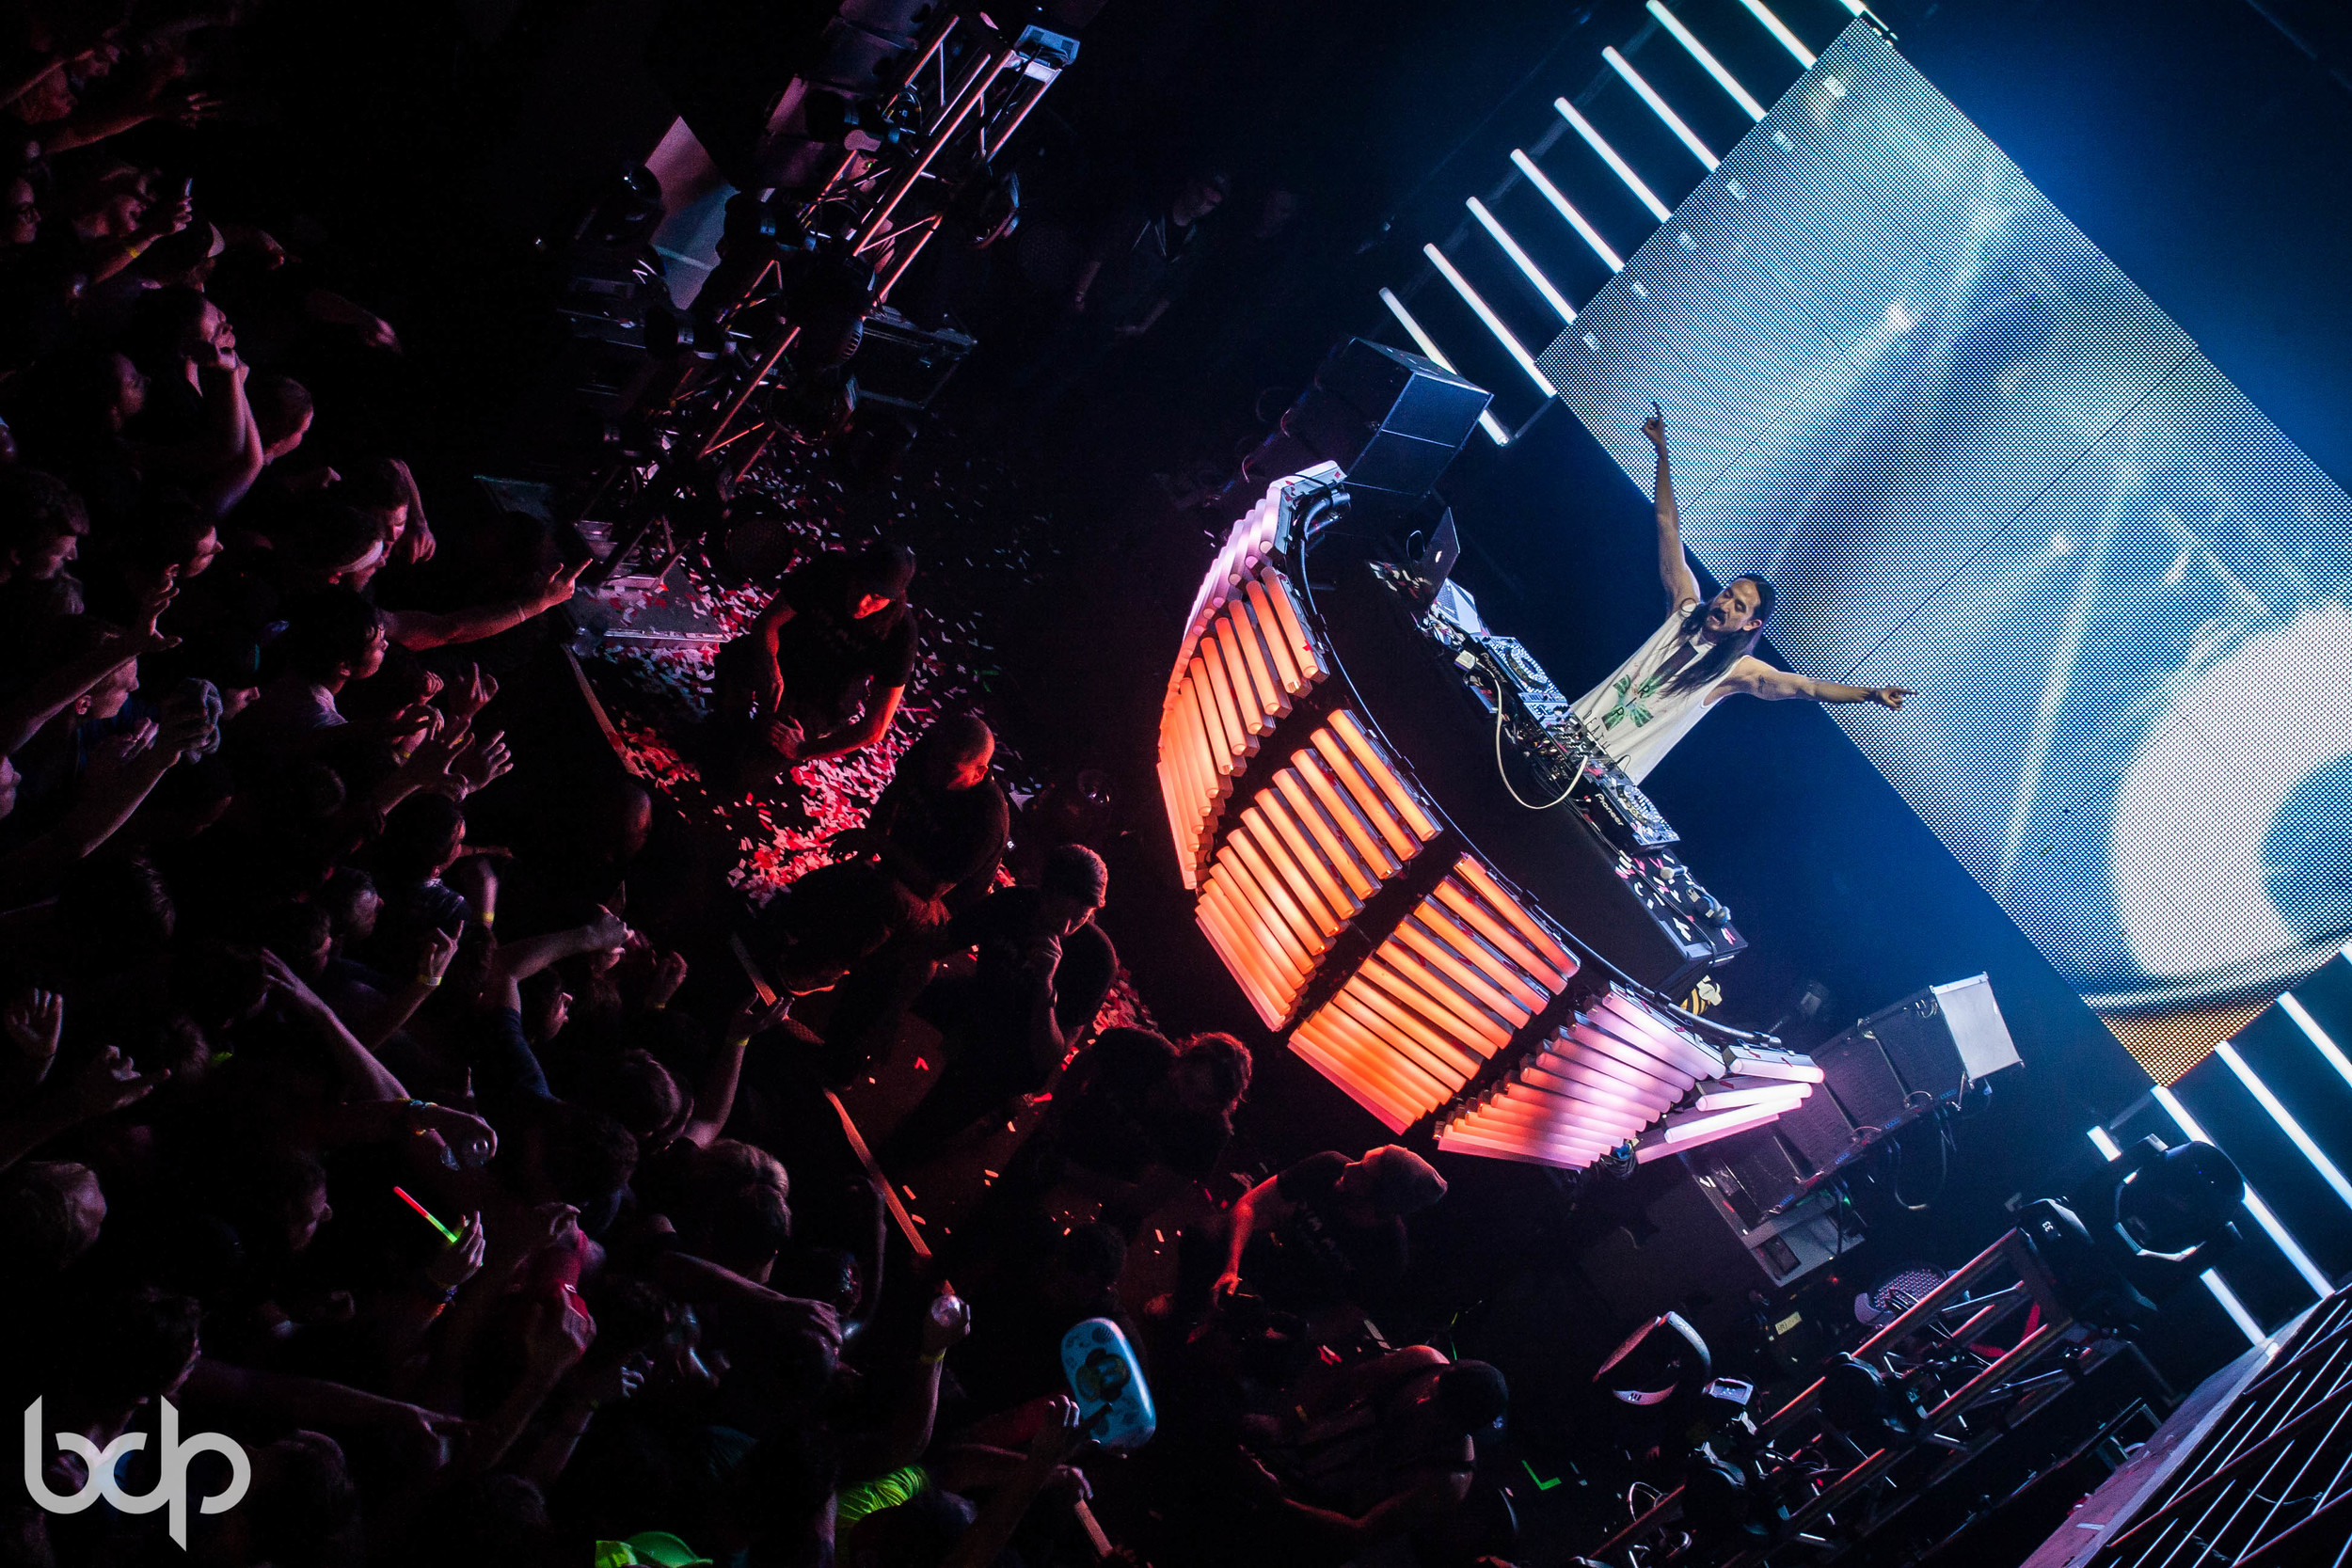 Aokify America Tour at Epic at Epic 110913 BDP-14.jpg